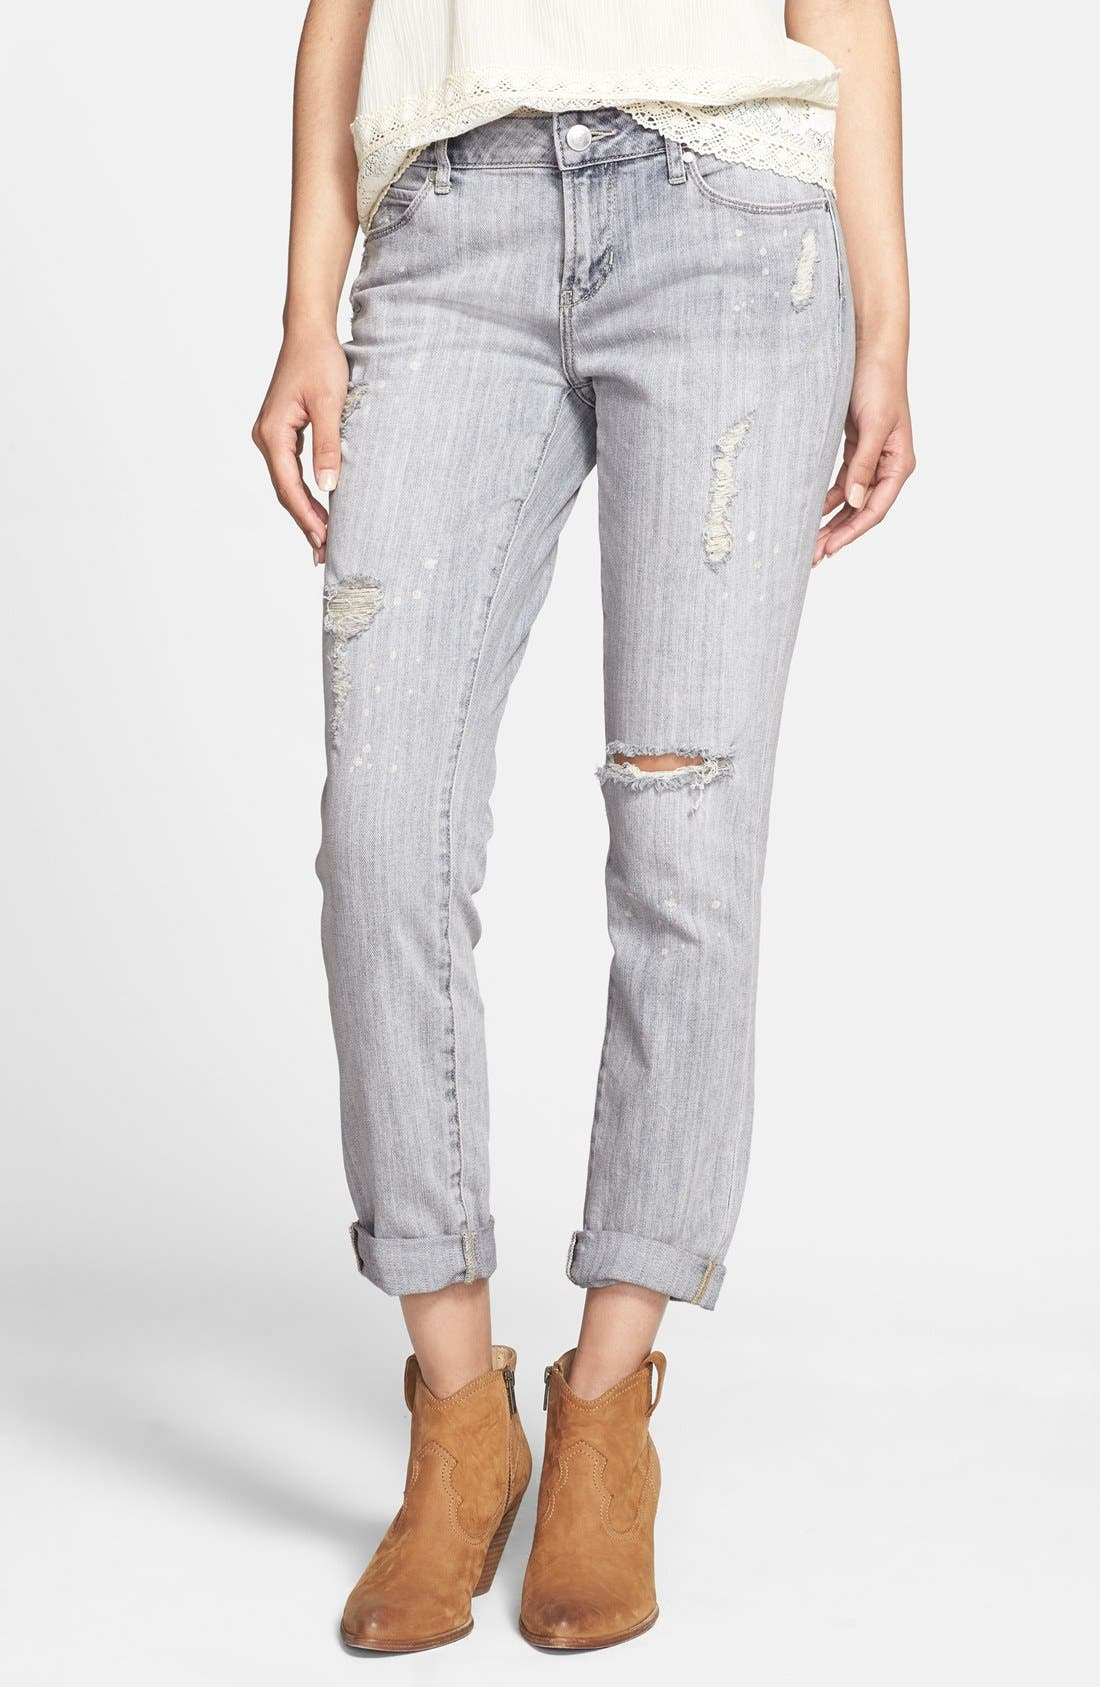 ARTICLES OF SOCIETY 'Cindy' Distressed Girlfriend Jeans, Main, color, 400